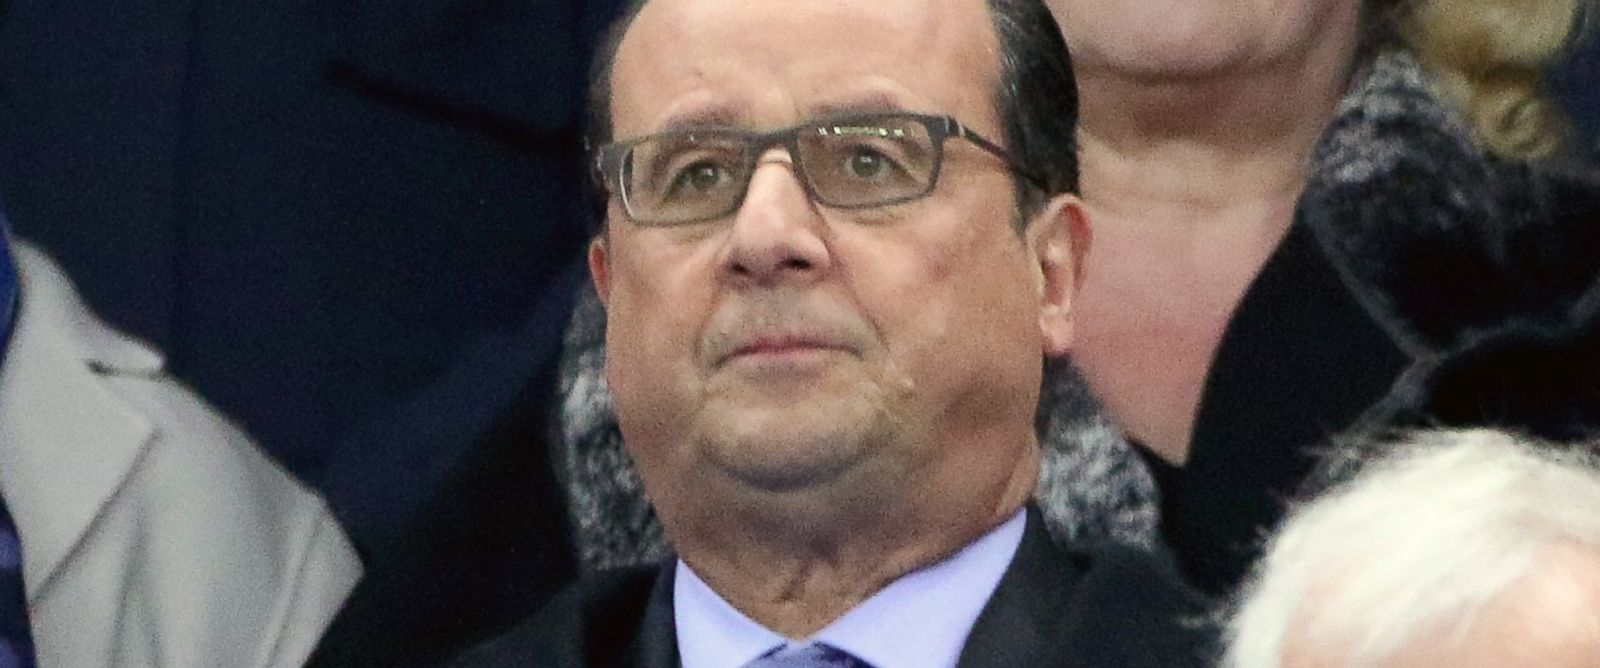 PHOTO: French President Francois Hollande attends the France v Germany International match at Stade de France on Nov. 13, 2015 in Paris.